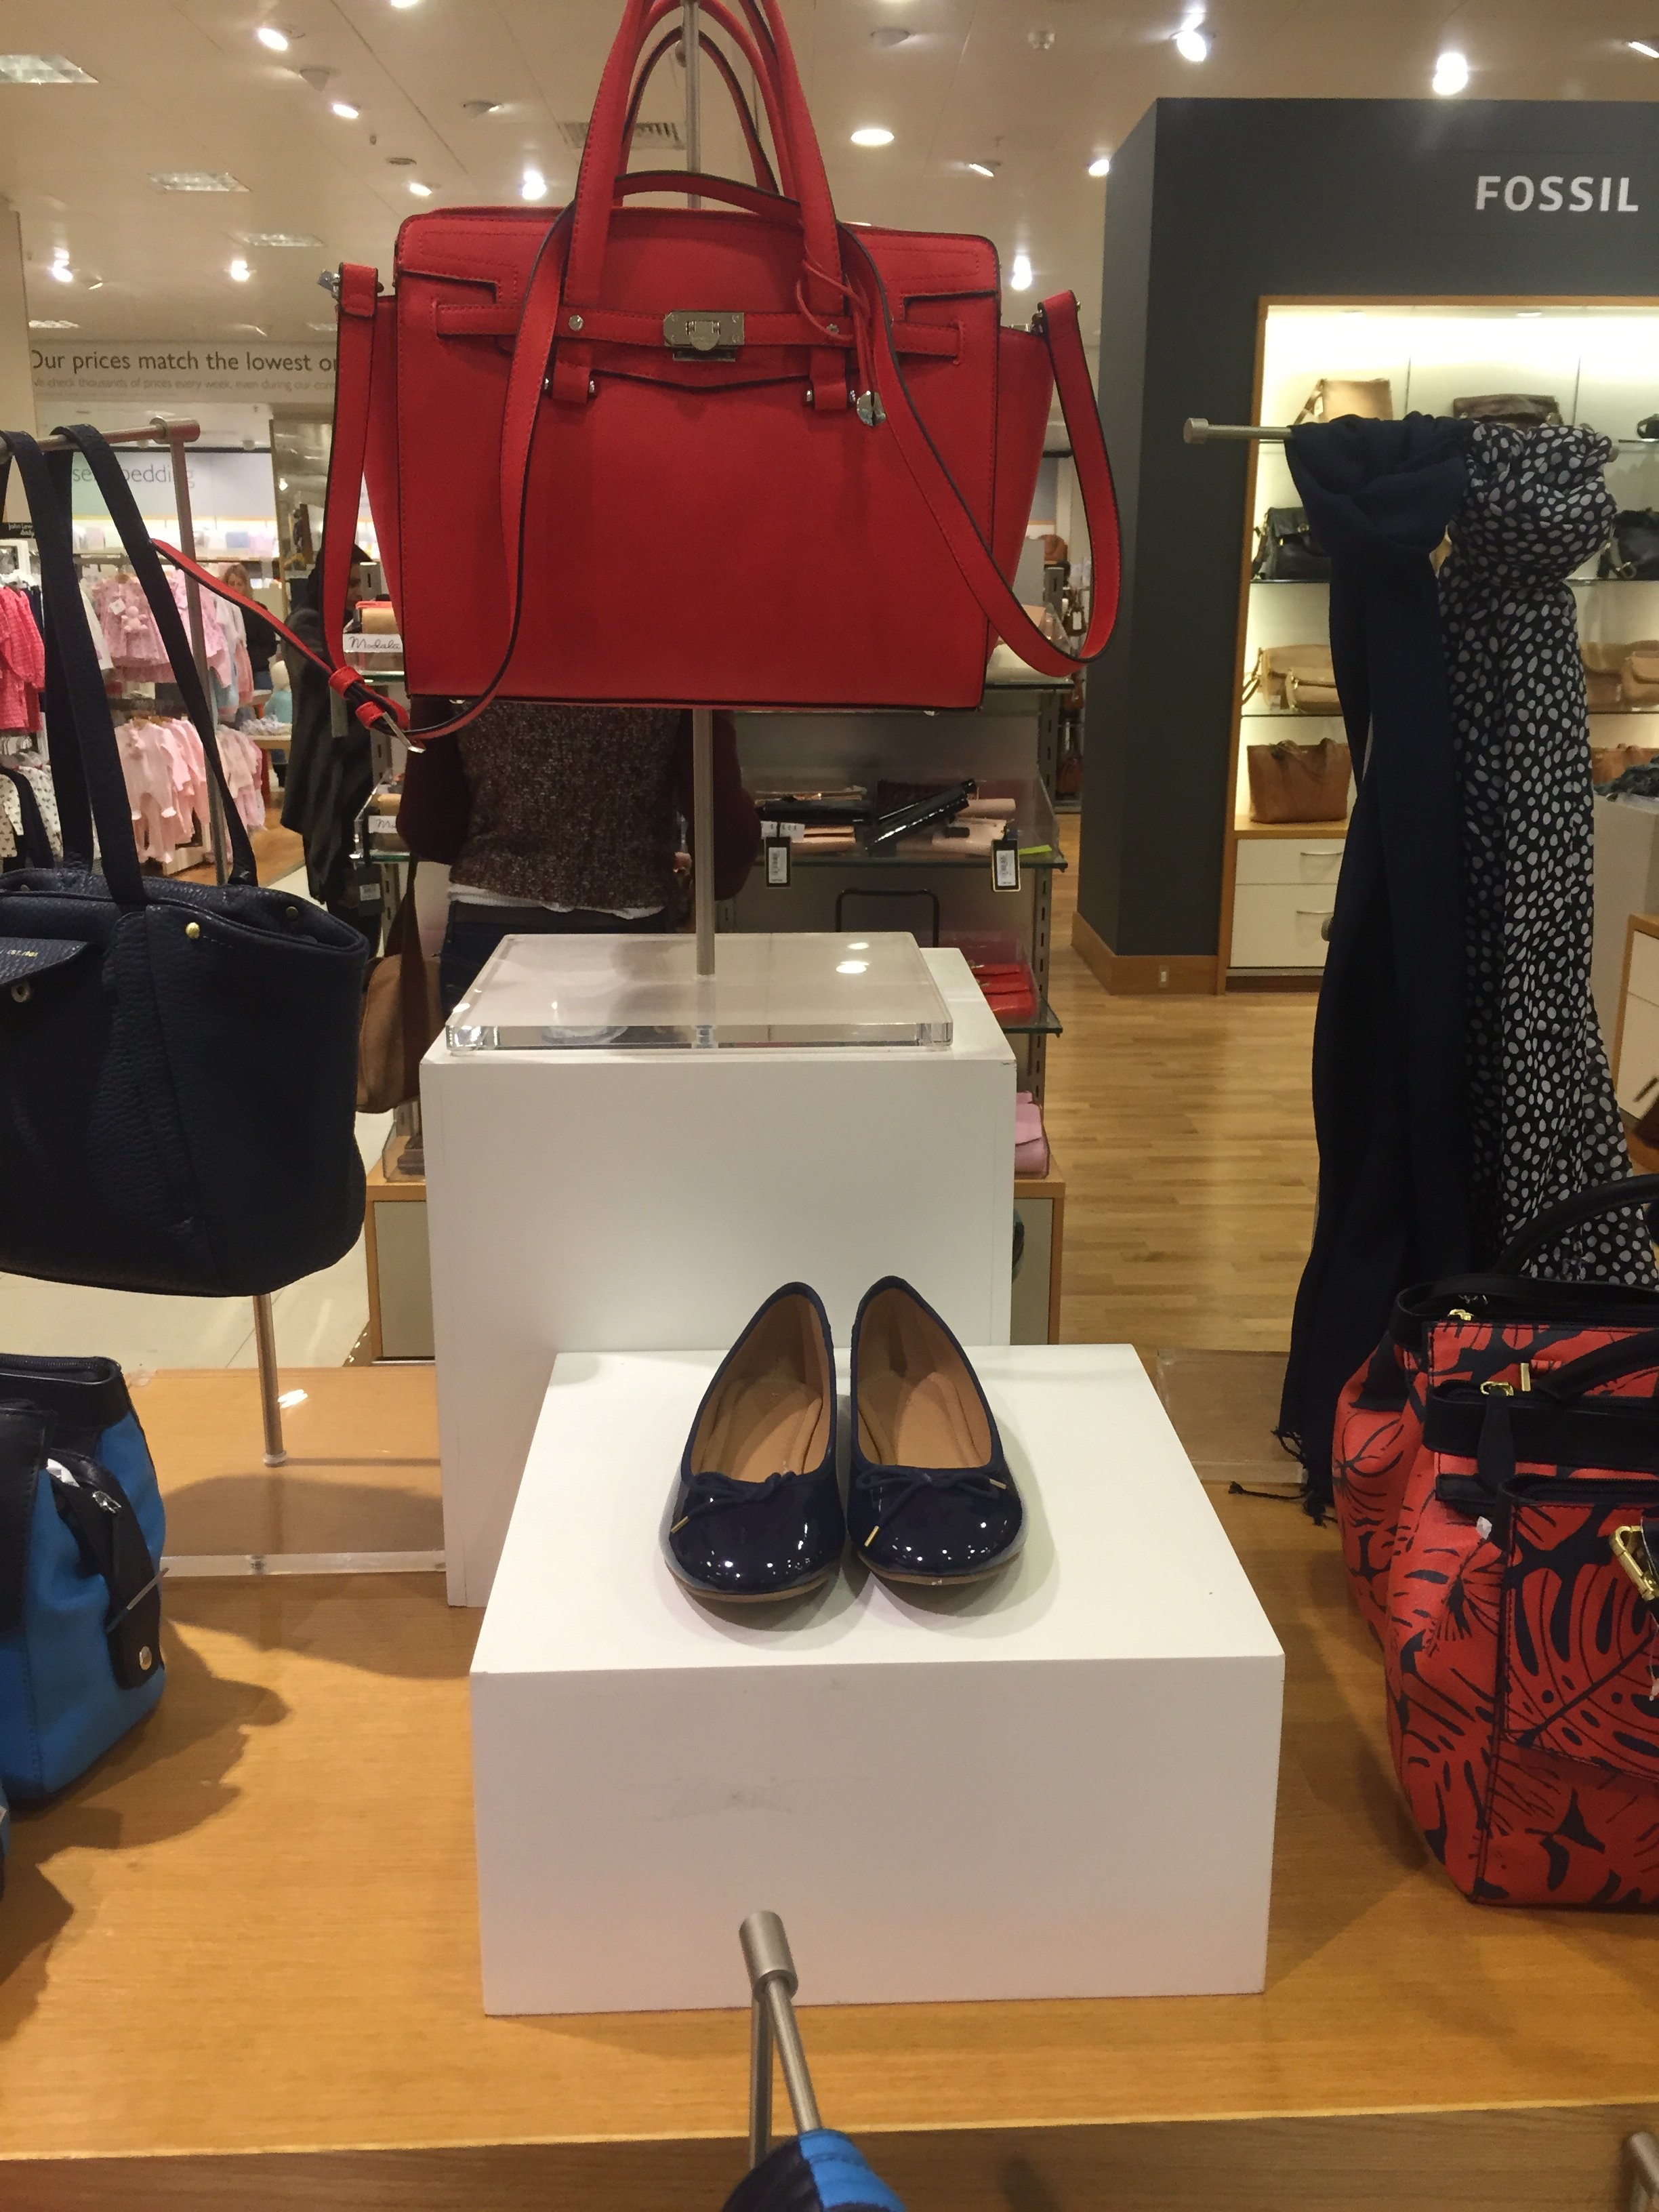 #9F6A2C Shoe Display Plinths Exhibition Plinths with 2448x3264 px of Recommended Glass Display Cabinets John Lewis 32642448 save image @ avoidforclosure.info